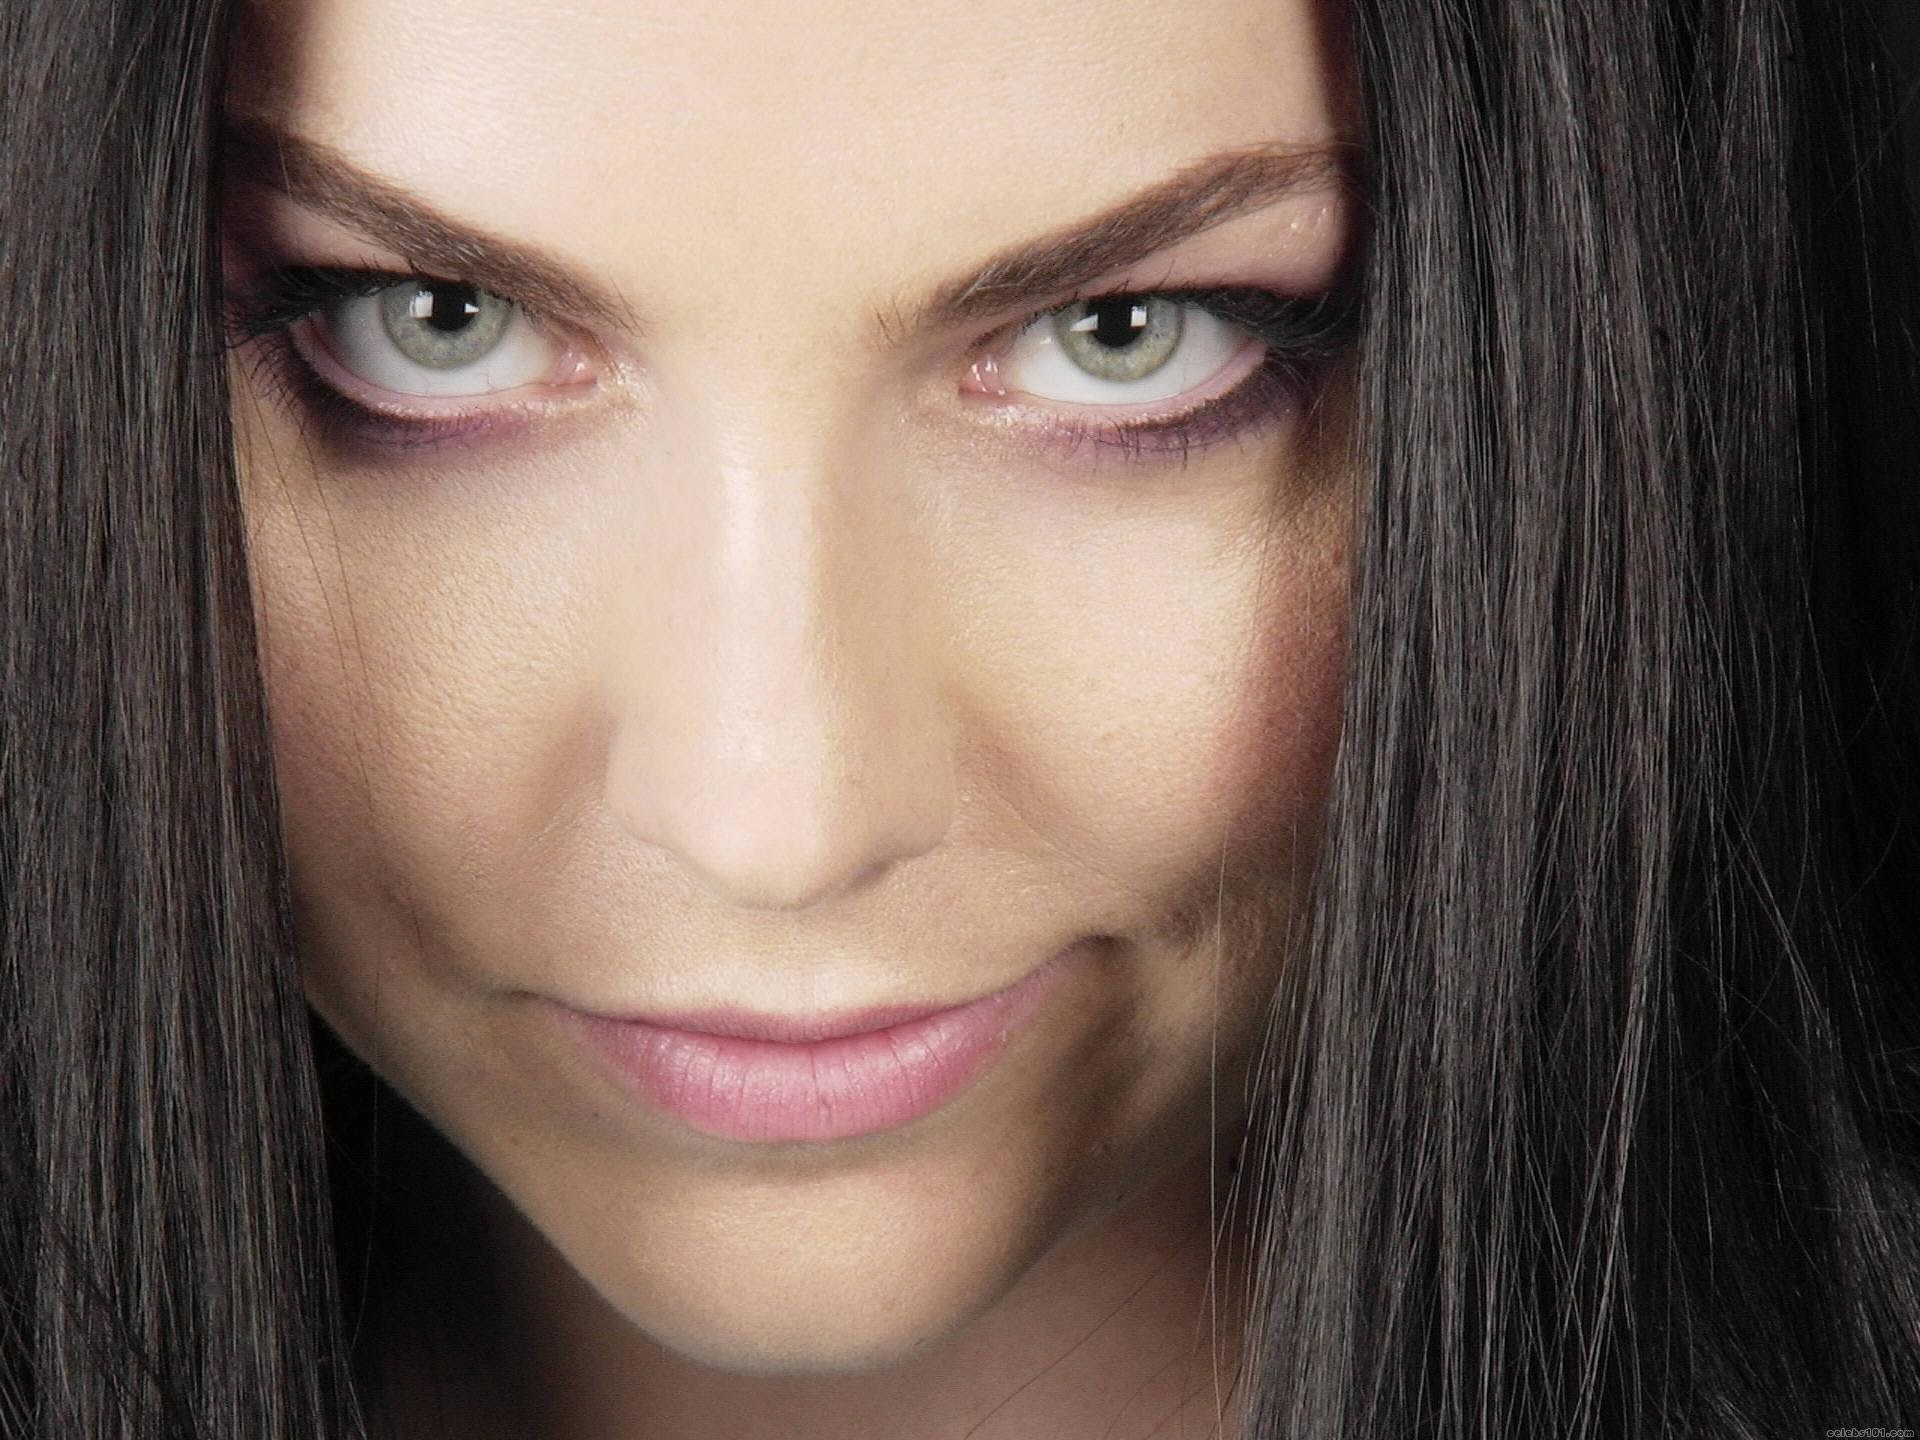 1920x1440 Amy Lee latest hot photoshoot 2015-16 | Top model in the world